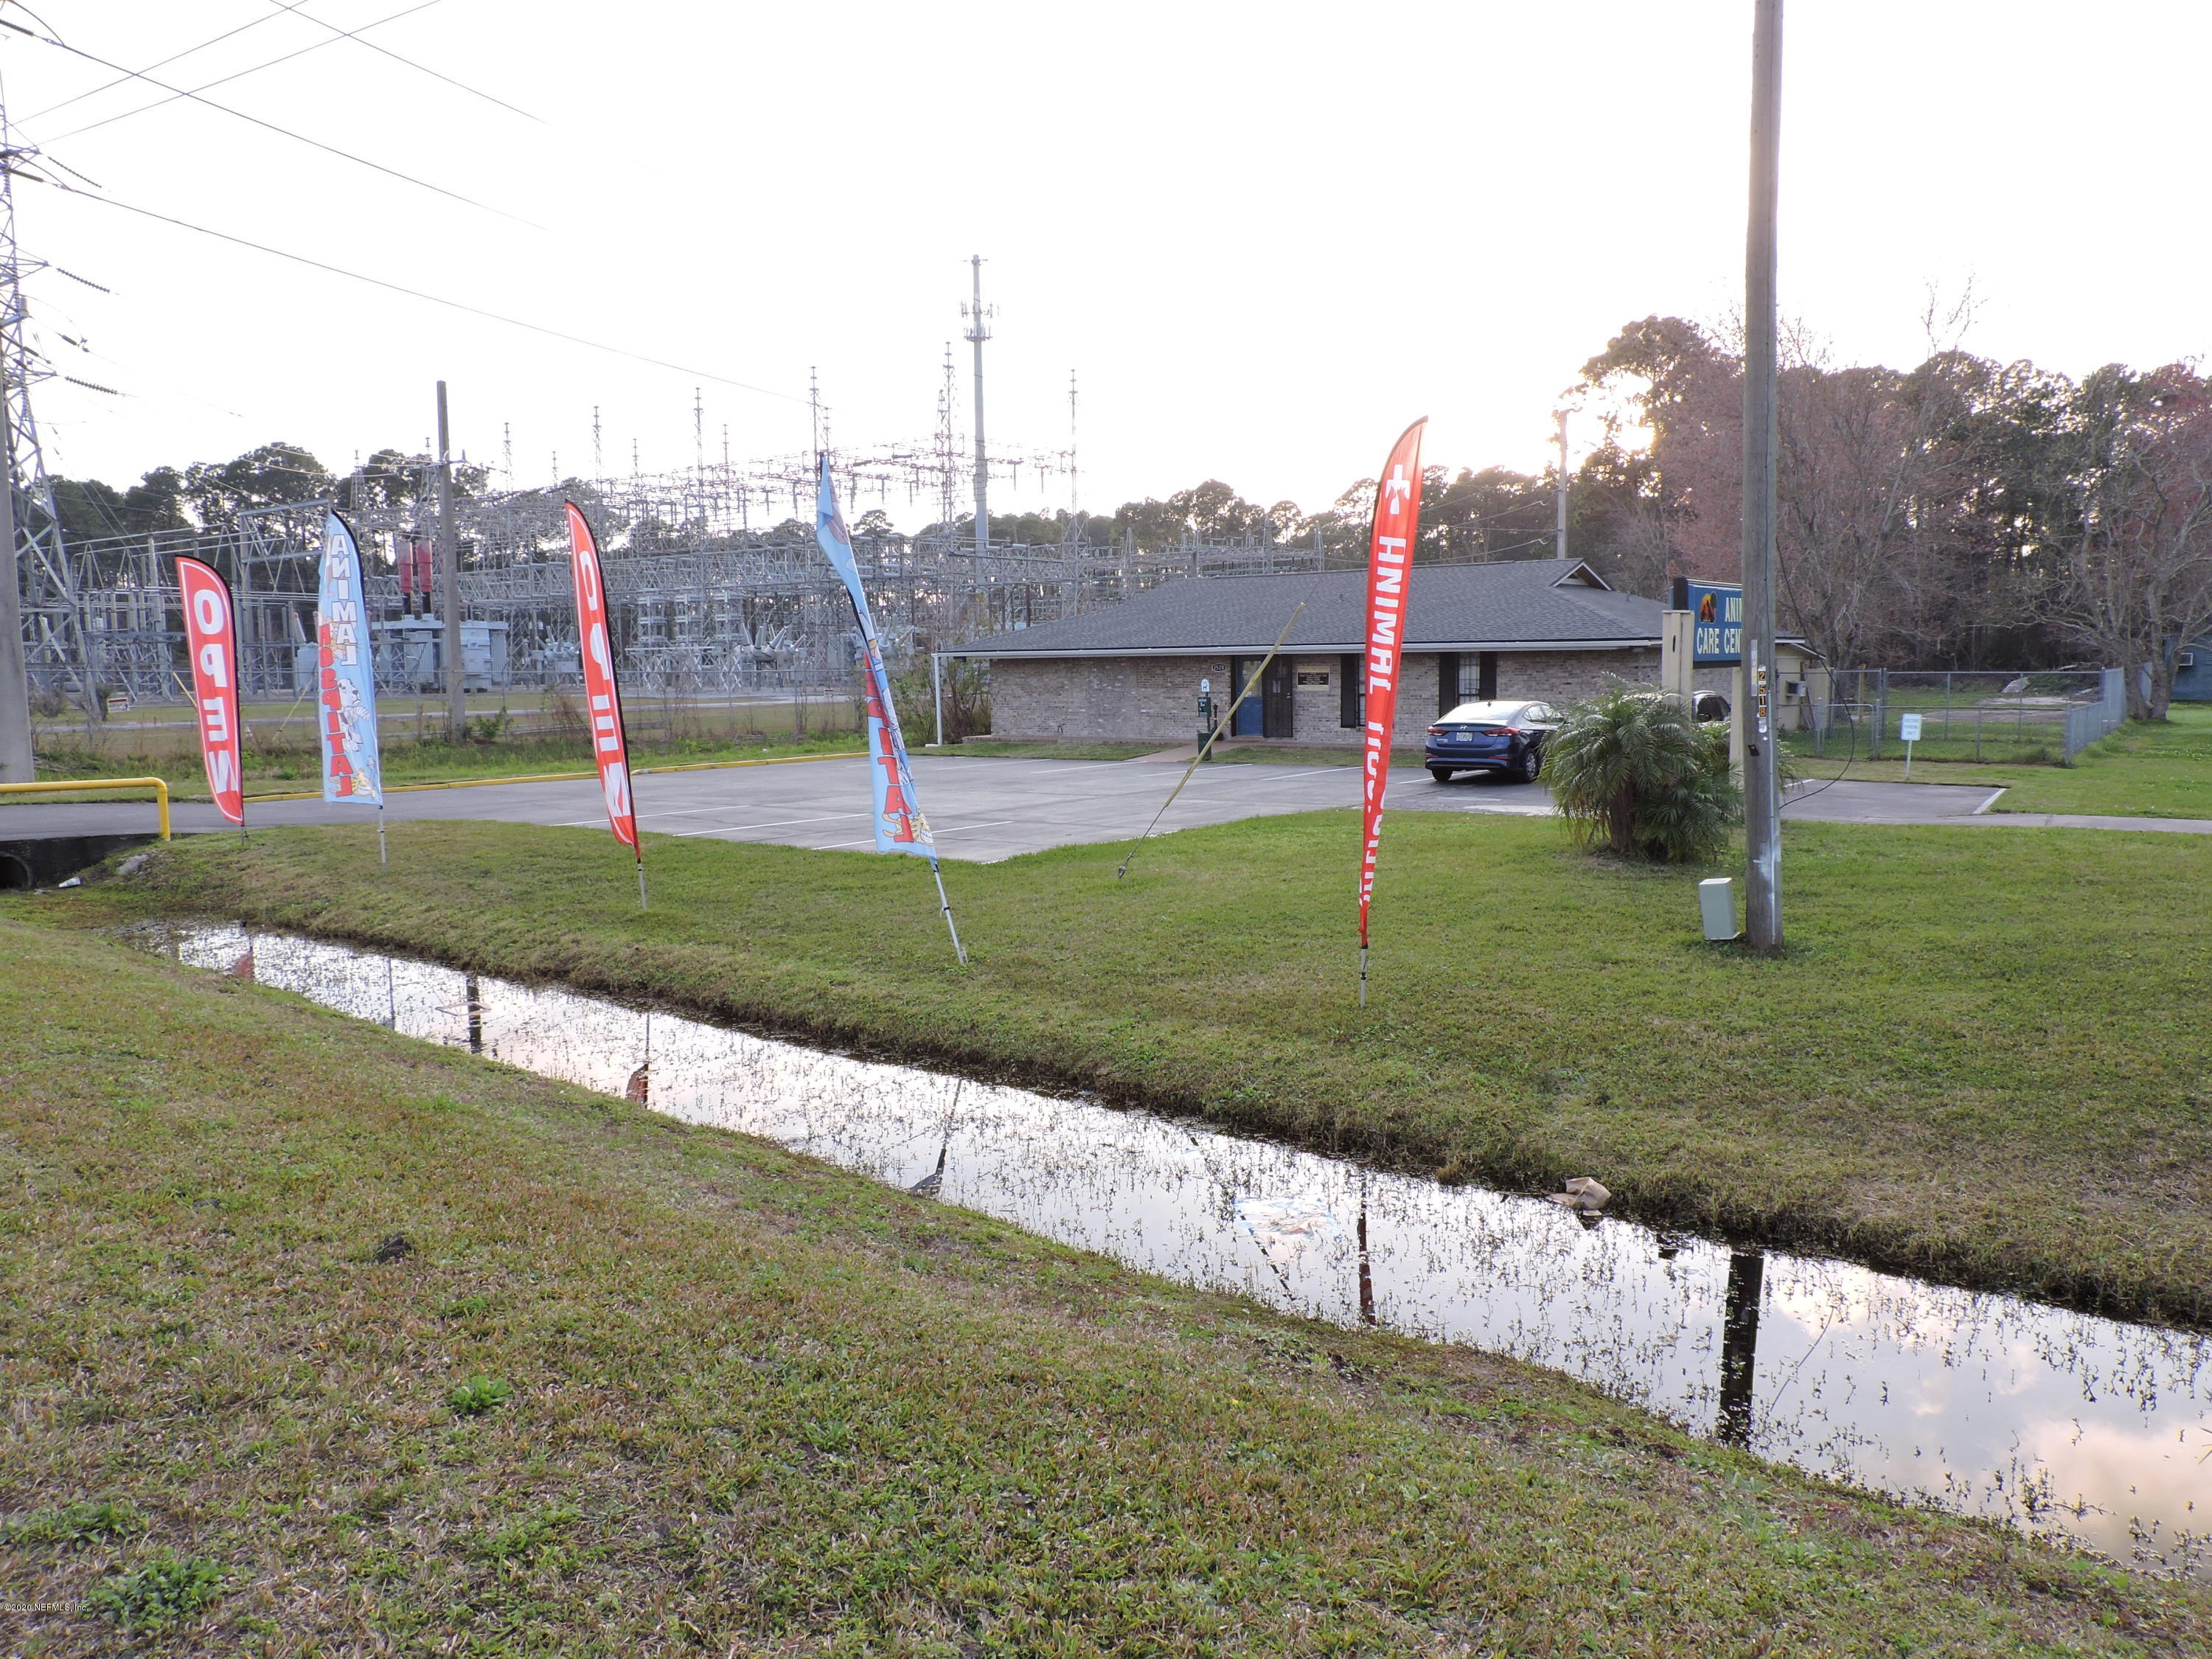 2520 ST JOHNS BLUFF, JACKSONVILLE, FLORIDA 32246, ,Commercial,For sale,ST JOHNS BLUFF,1037941